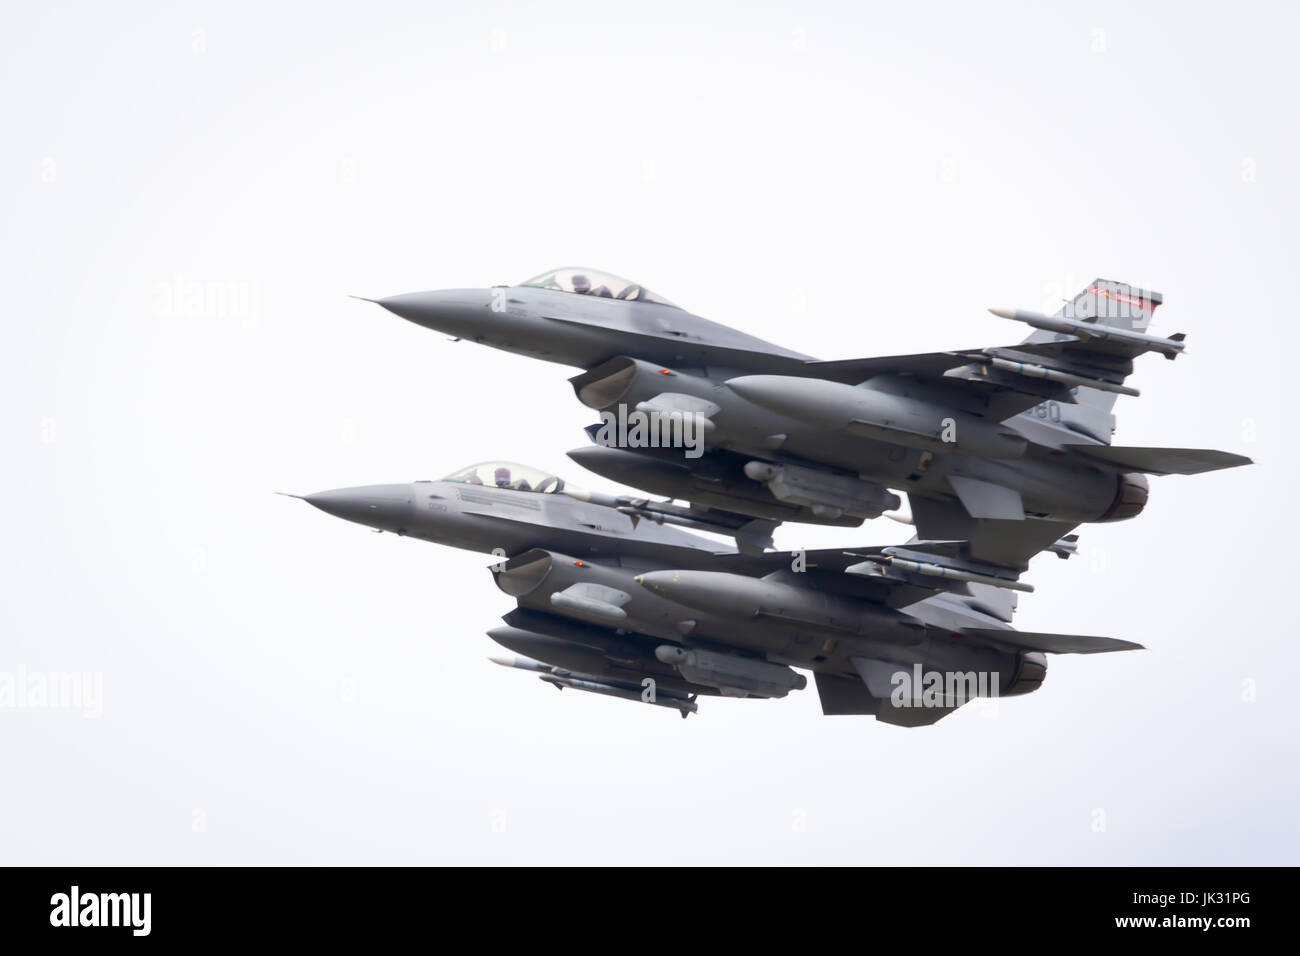 US Air Force Lockheed Martin F-16 Fighting Falcon flypast at Fairford International Air Tattoo 2017 - Stock Image